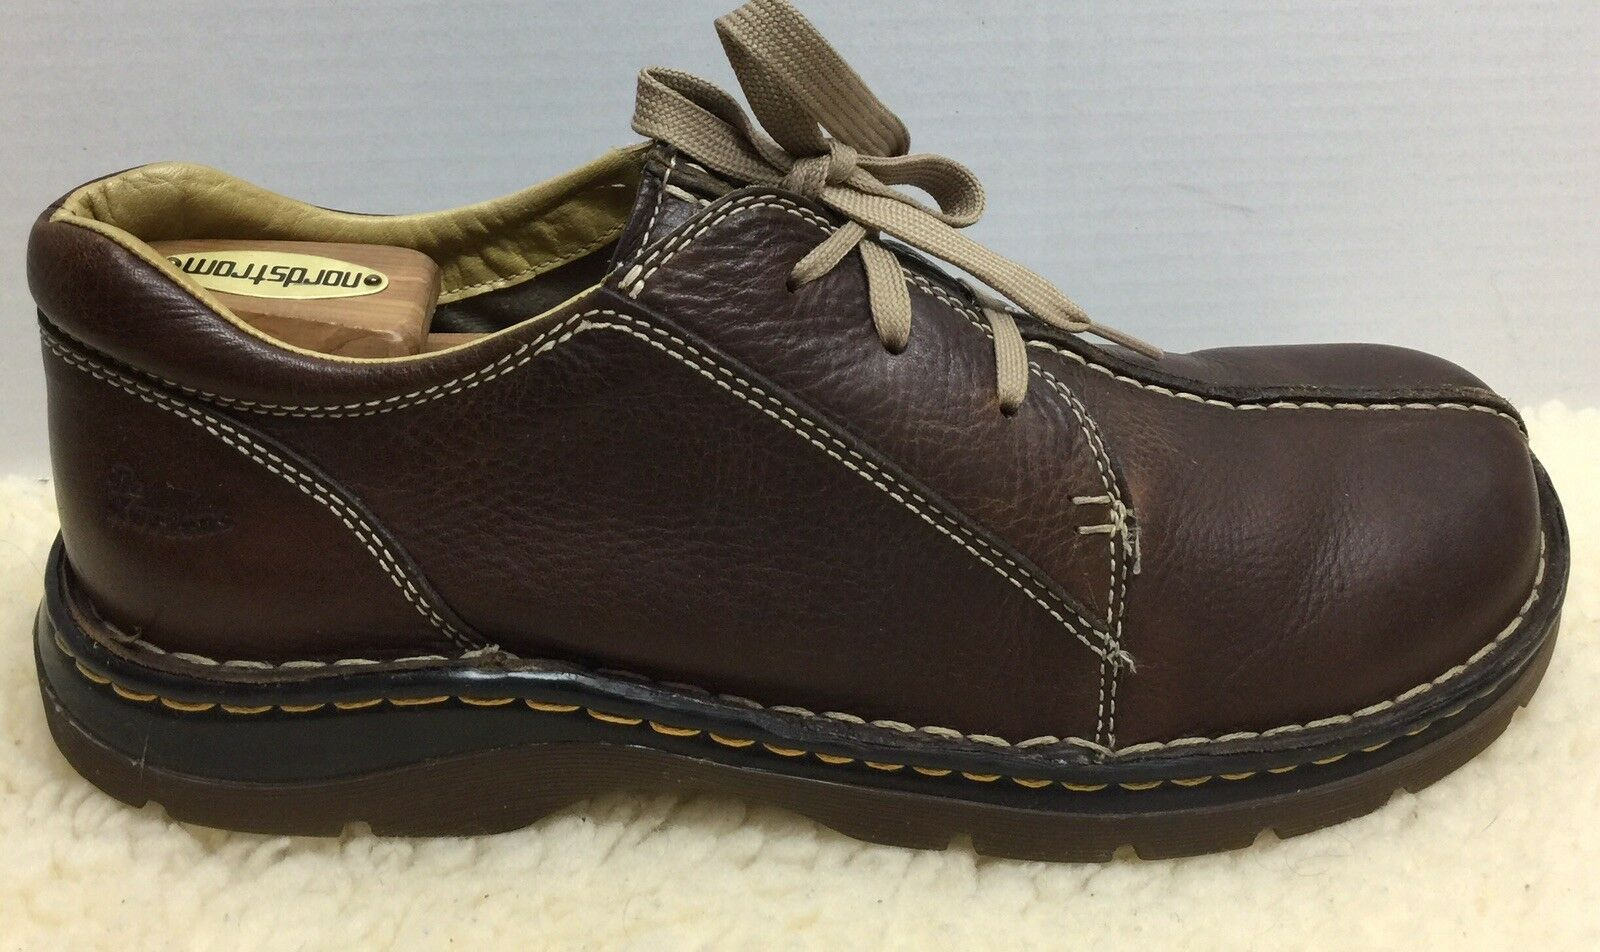 Dr Doc Martens Men's Brown Oxford Lace-up Size US 11 Euro 45 Brown Leather 11232